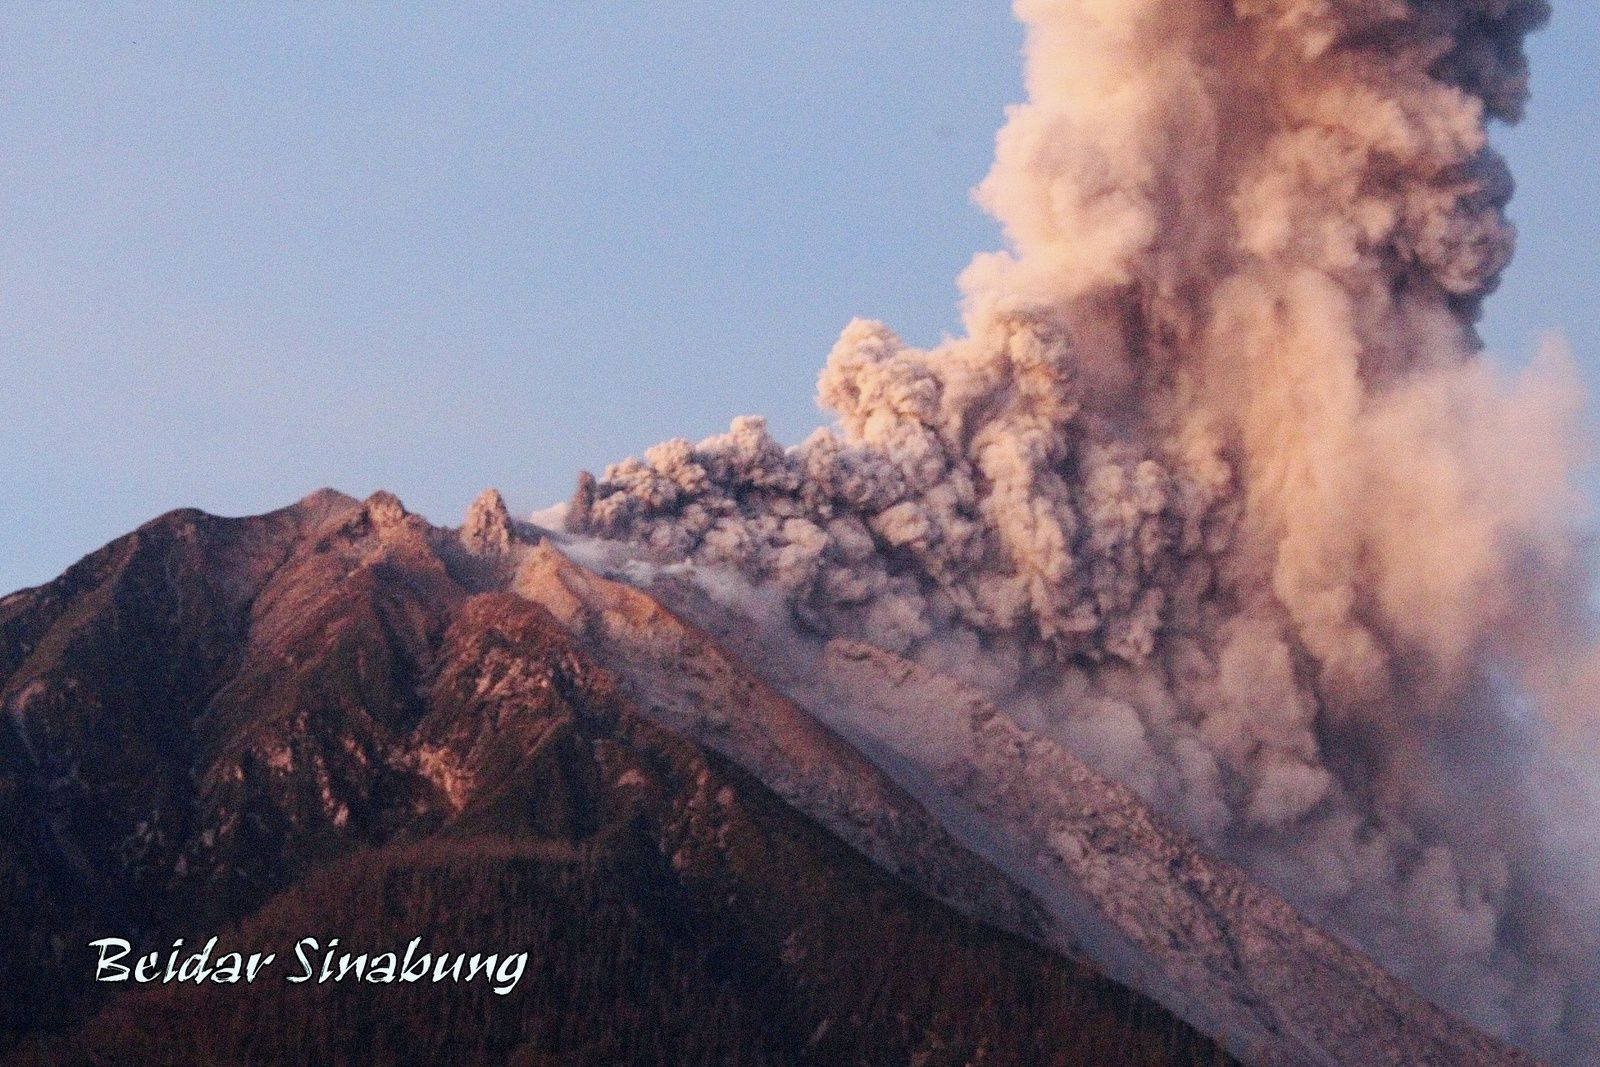 Sinabung - 17.10.2017 / 18h23 local - photo F.Surbakti / Beidar Sinabung